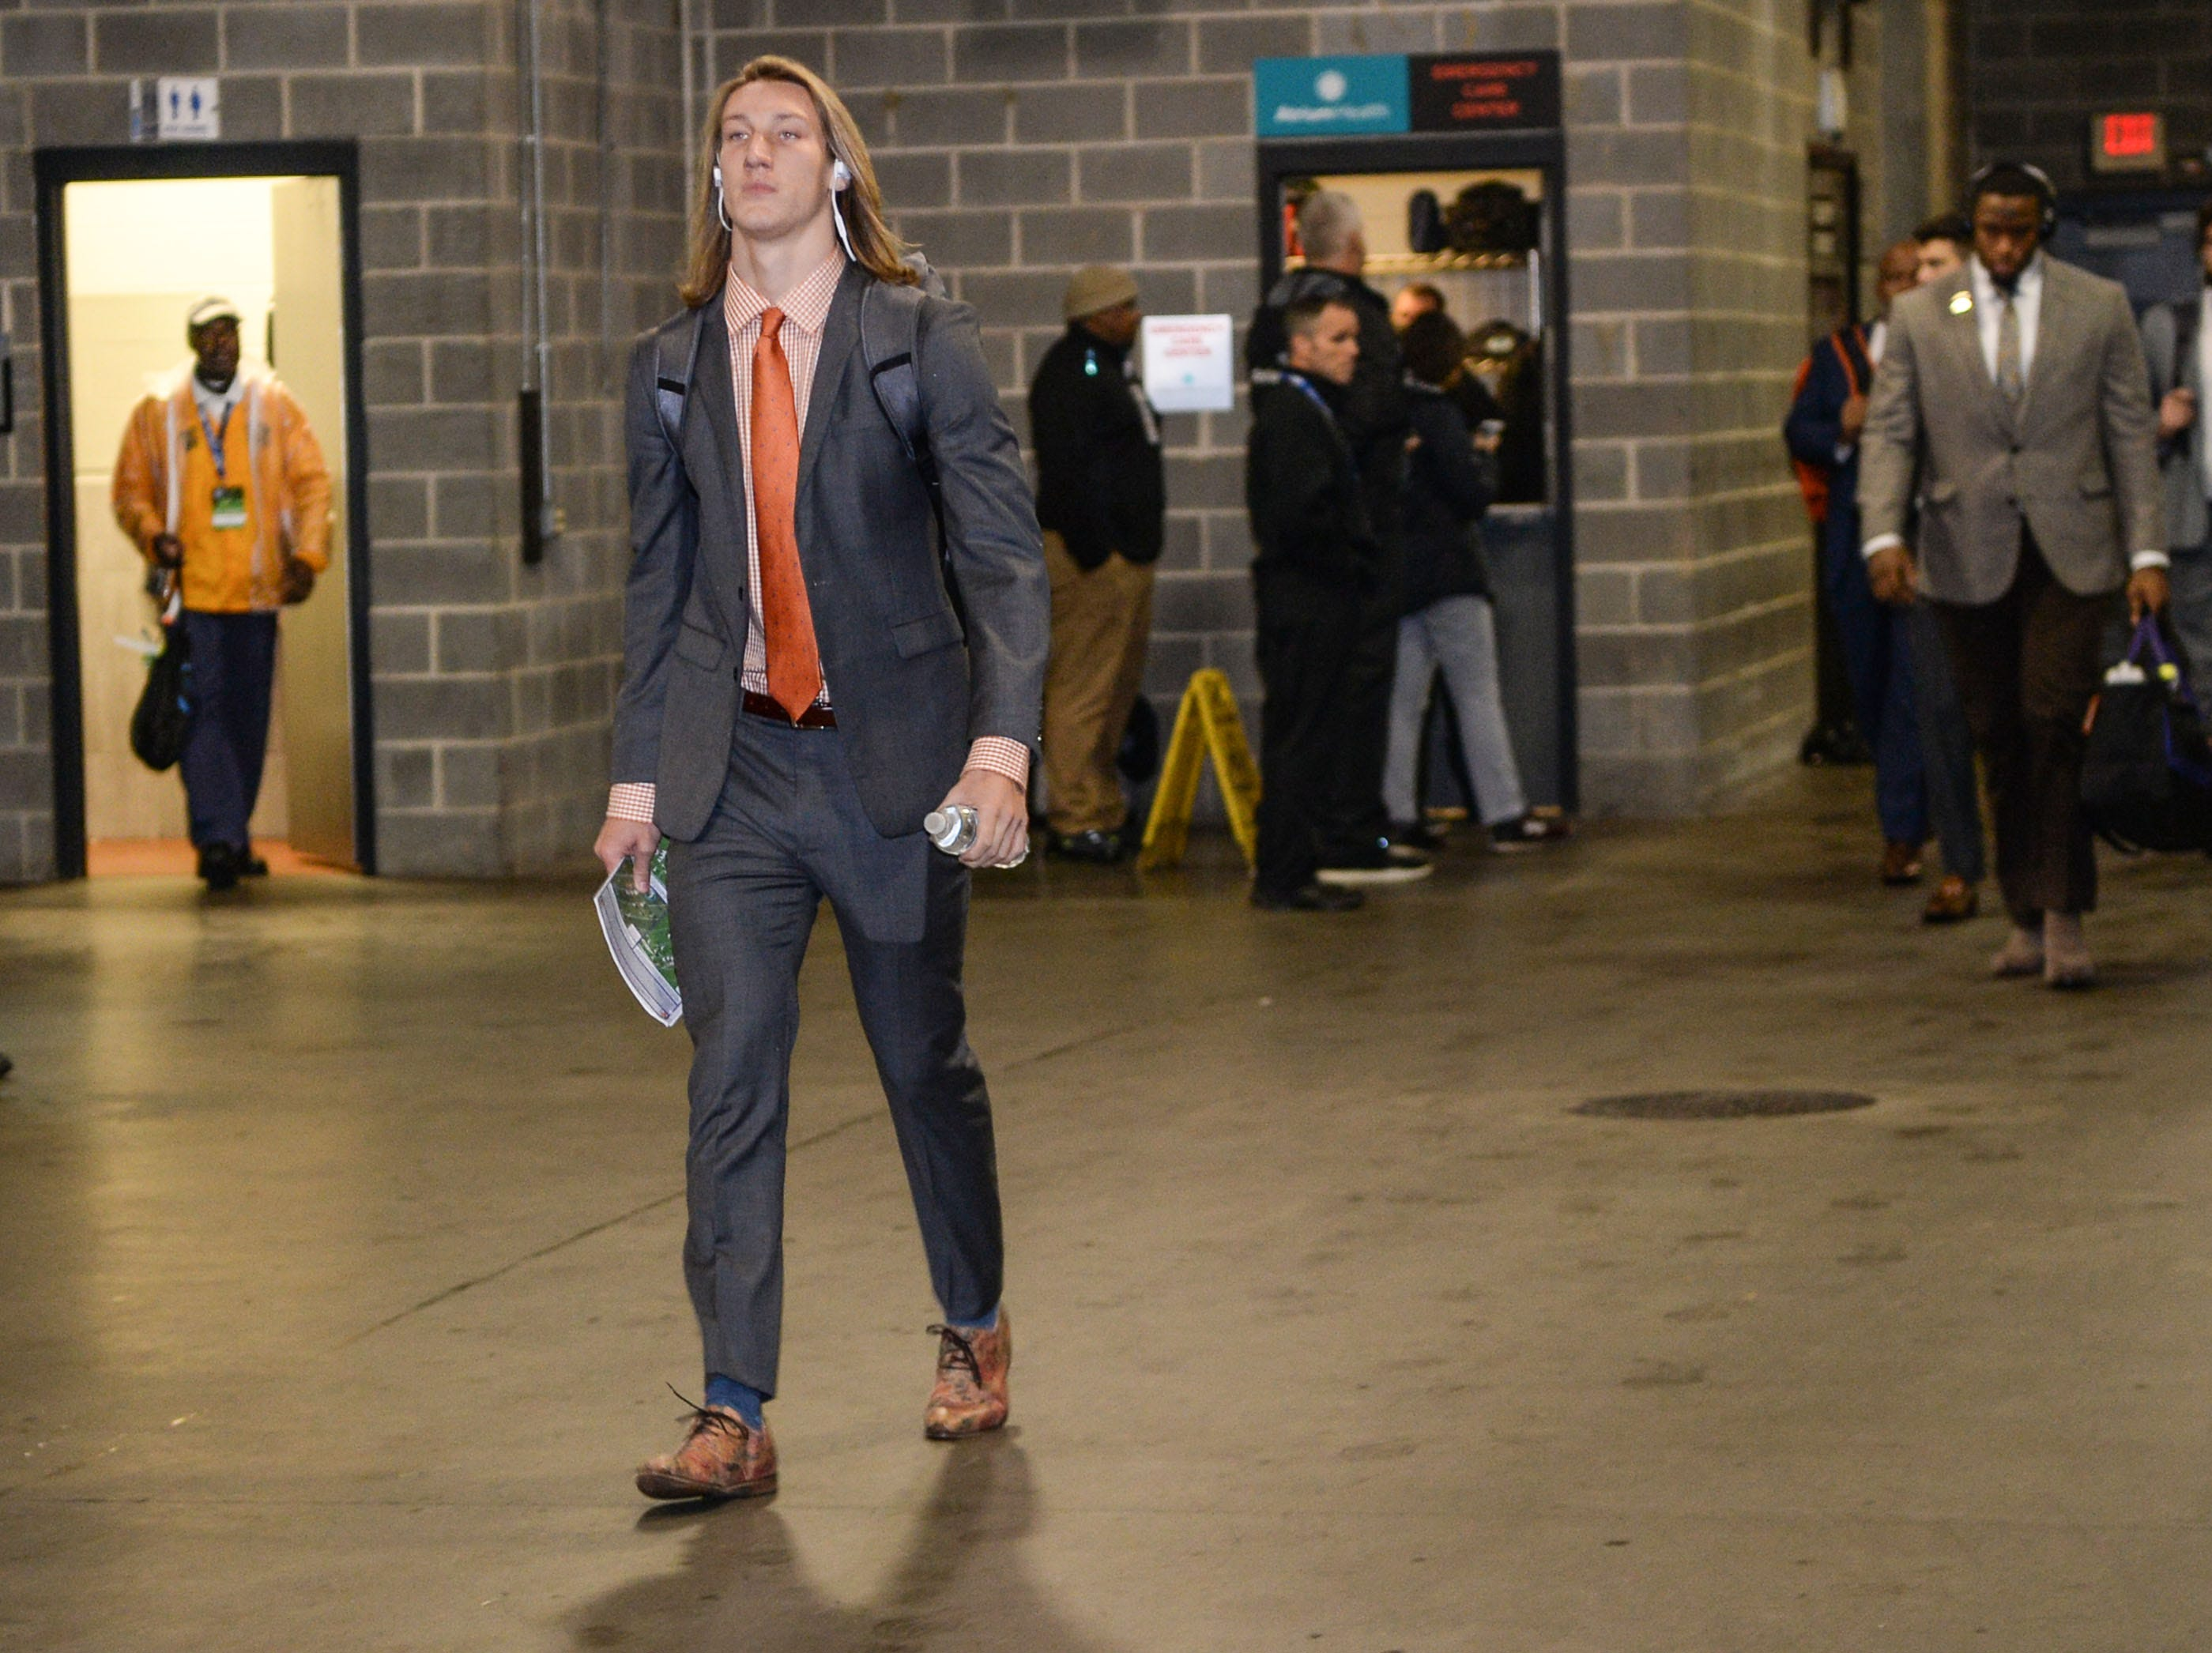 Clemson quarterback Trevor Lawrence (16) arrives before the game with Pittsburgh at the Dr. Pepper ACC football championship at Bank of America Stadium in Charlotte, N.C. on Saturday, December 1, 2018.